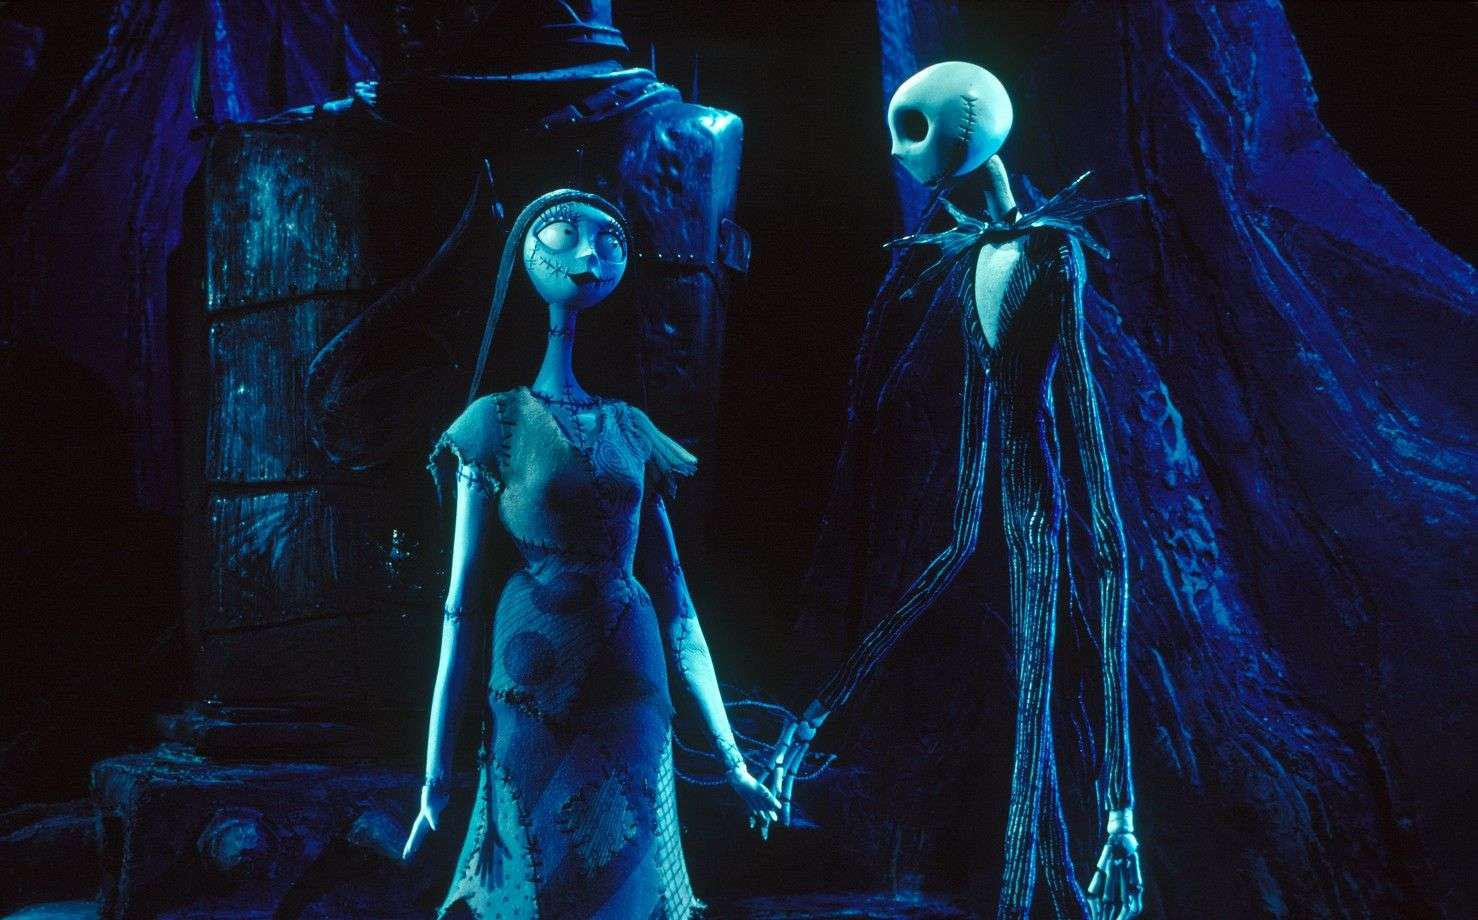 the nightmare before christmas - Nightmare Before Christmas Photo ...